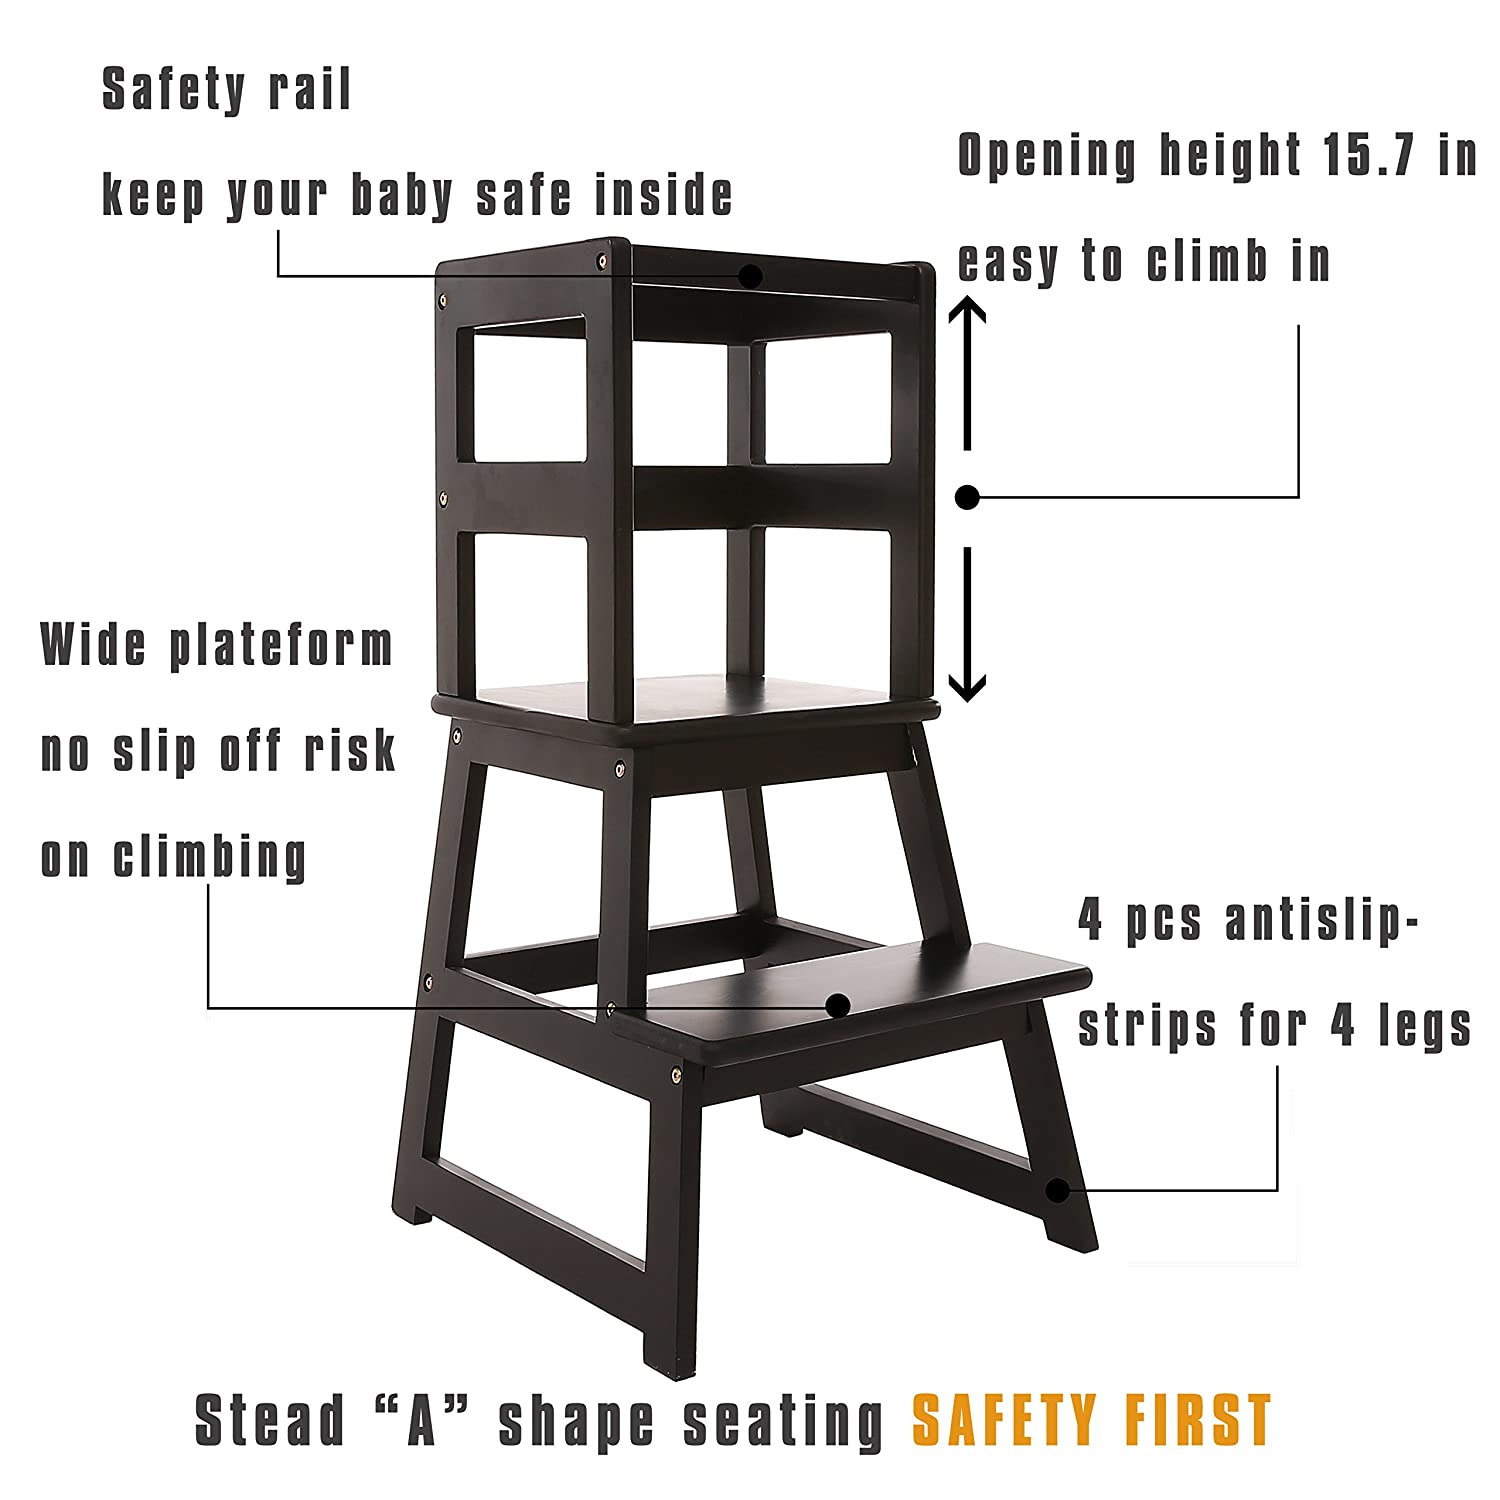 Outstanding Sdadi Kids Kitchen Step Stool With Safety Rail For Toddlers 18 Months And Older Black Lt01B Creativecarmelina Interior Chair Design Creativecarmelinacom